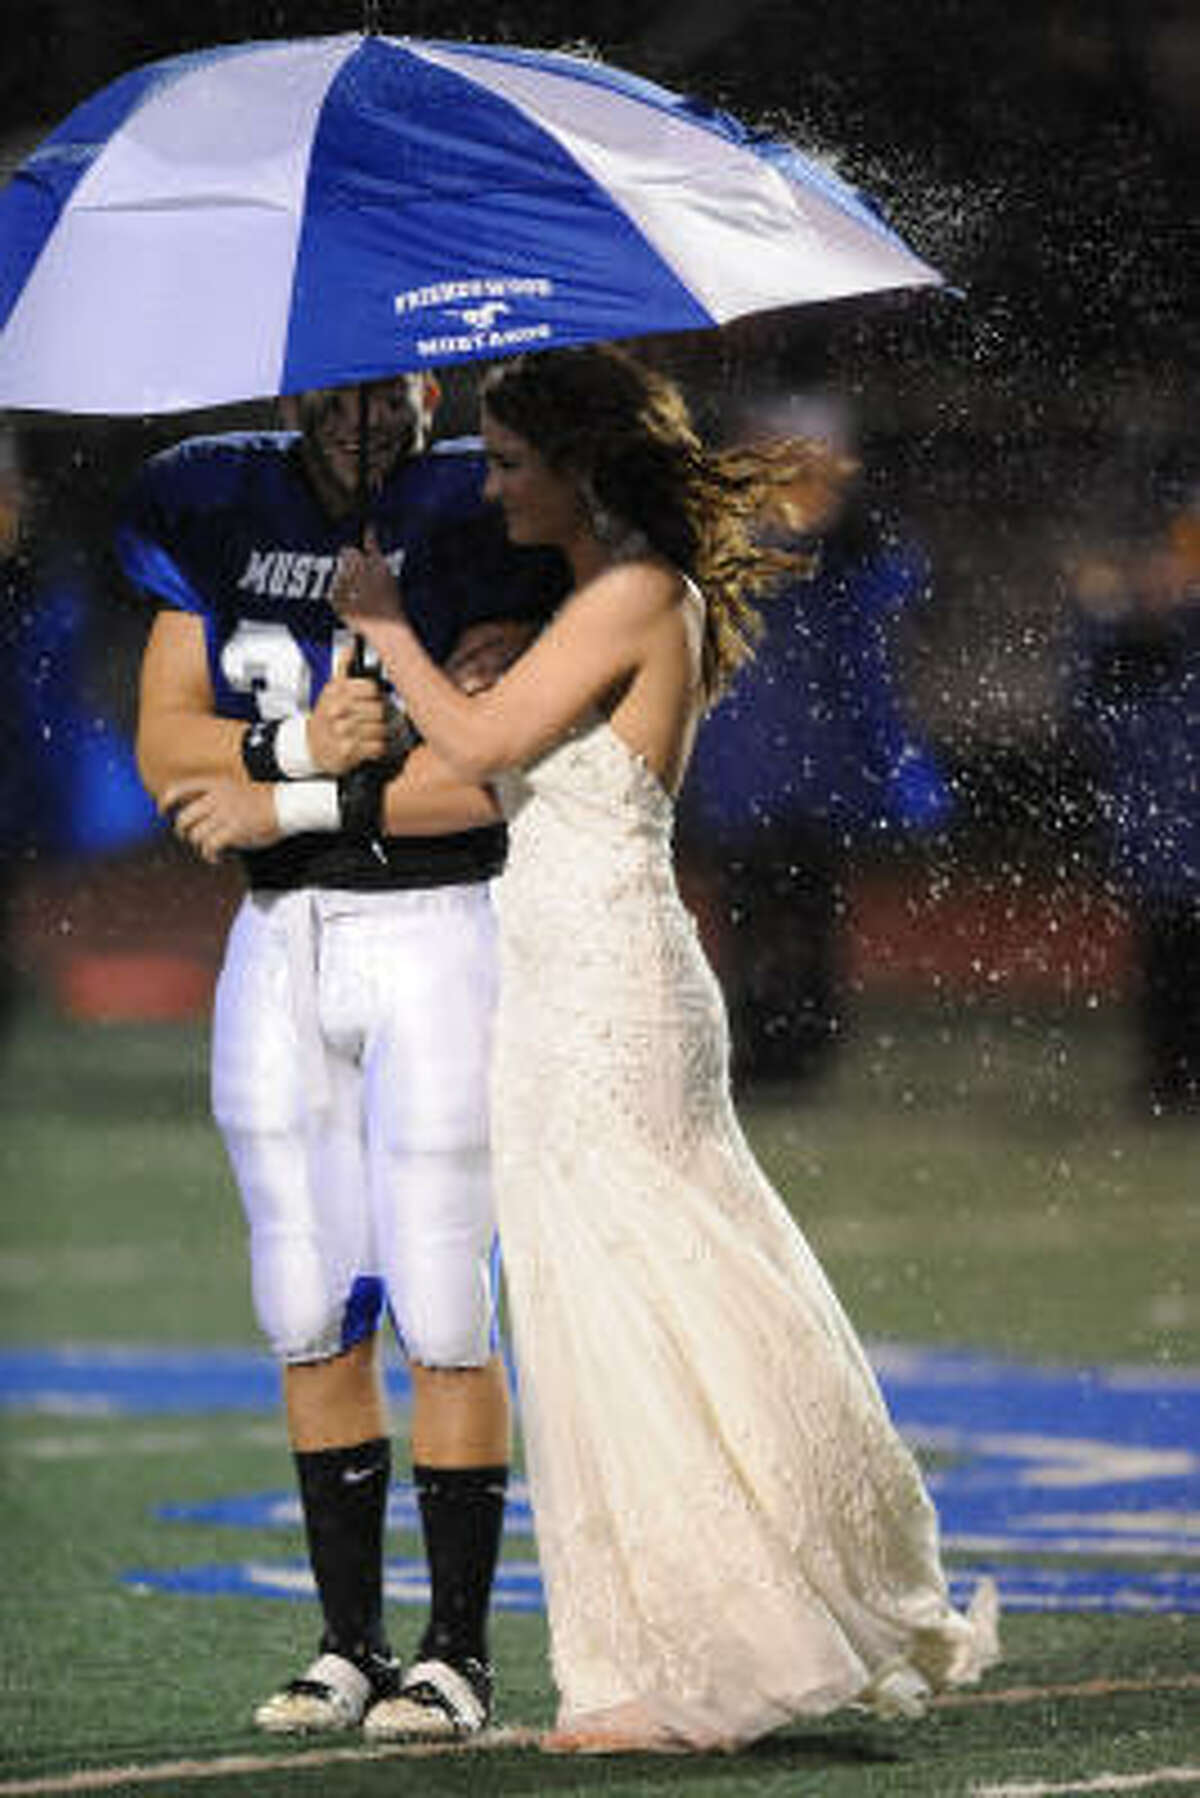 Queen candidate McKenna Harclerode and her escort, Sam Giamfortone, try to fend off the rain.